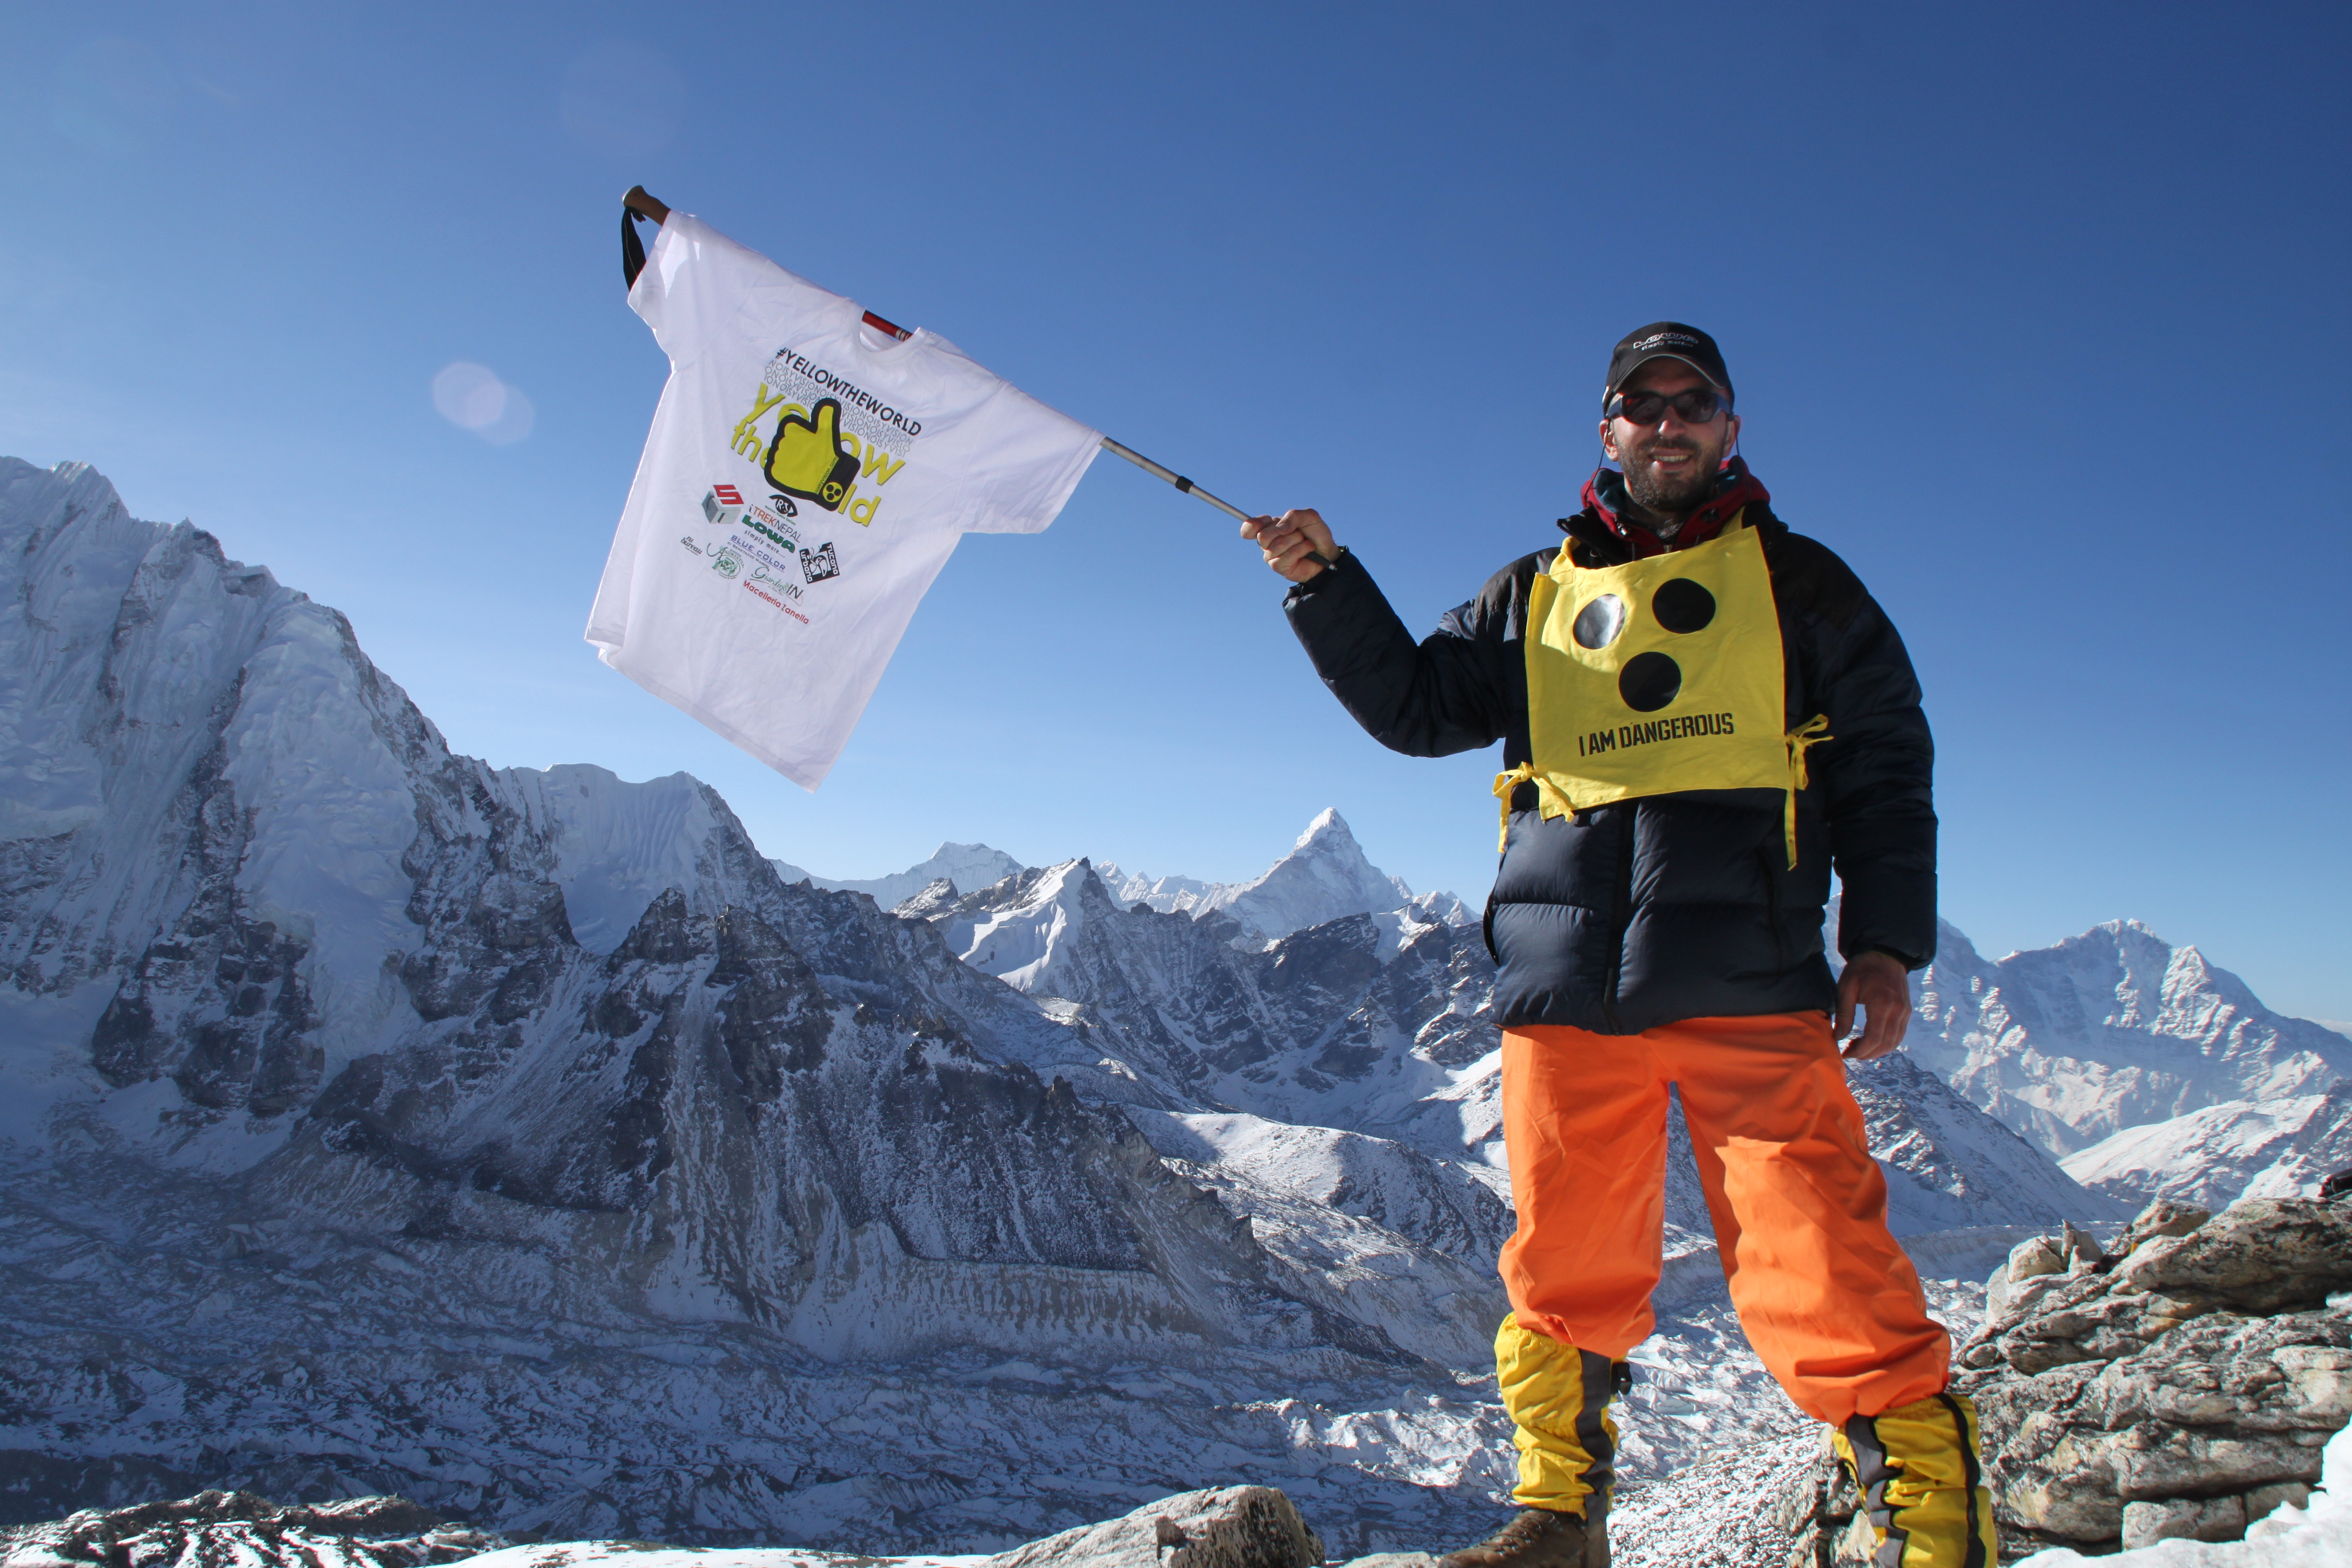 A photo of Dario Sorgato standing on top of a snow covered mountain holding a Yellow the World tee-shirt on a pole